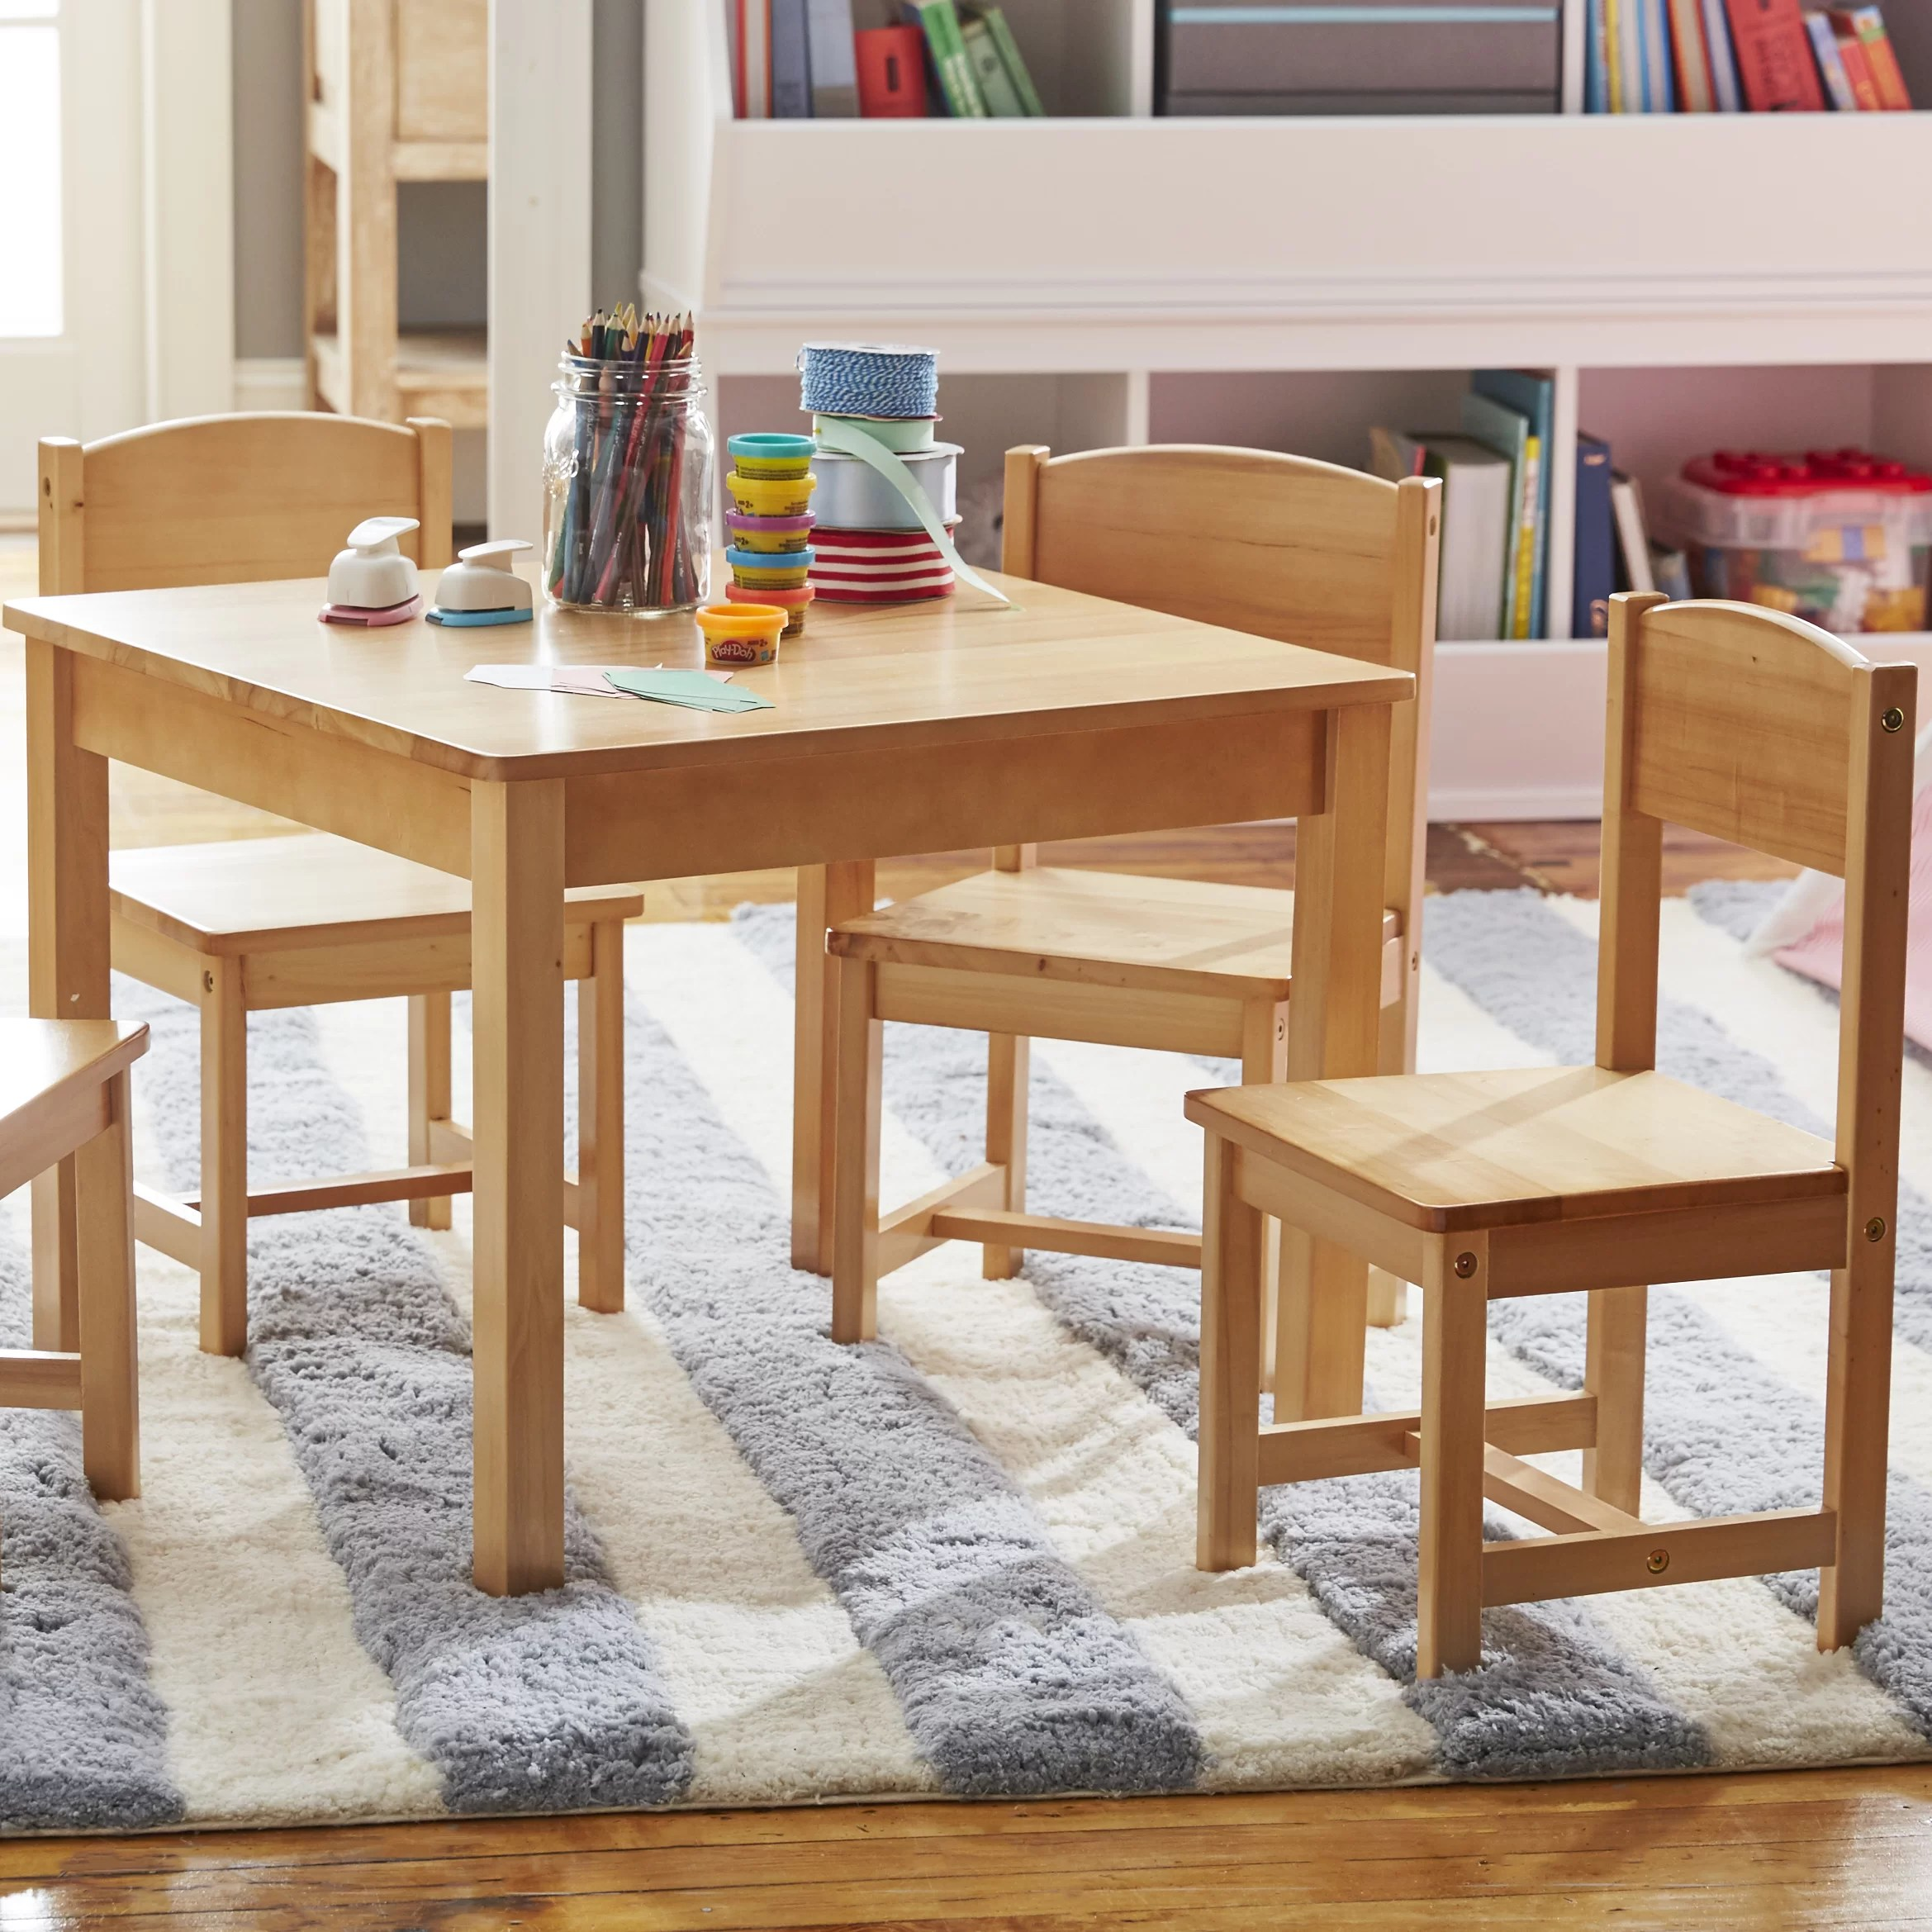 KidKraft Farmhouse Kids 5 Piece Square Table And Chair Set